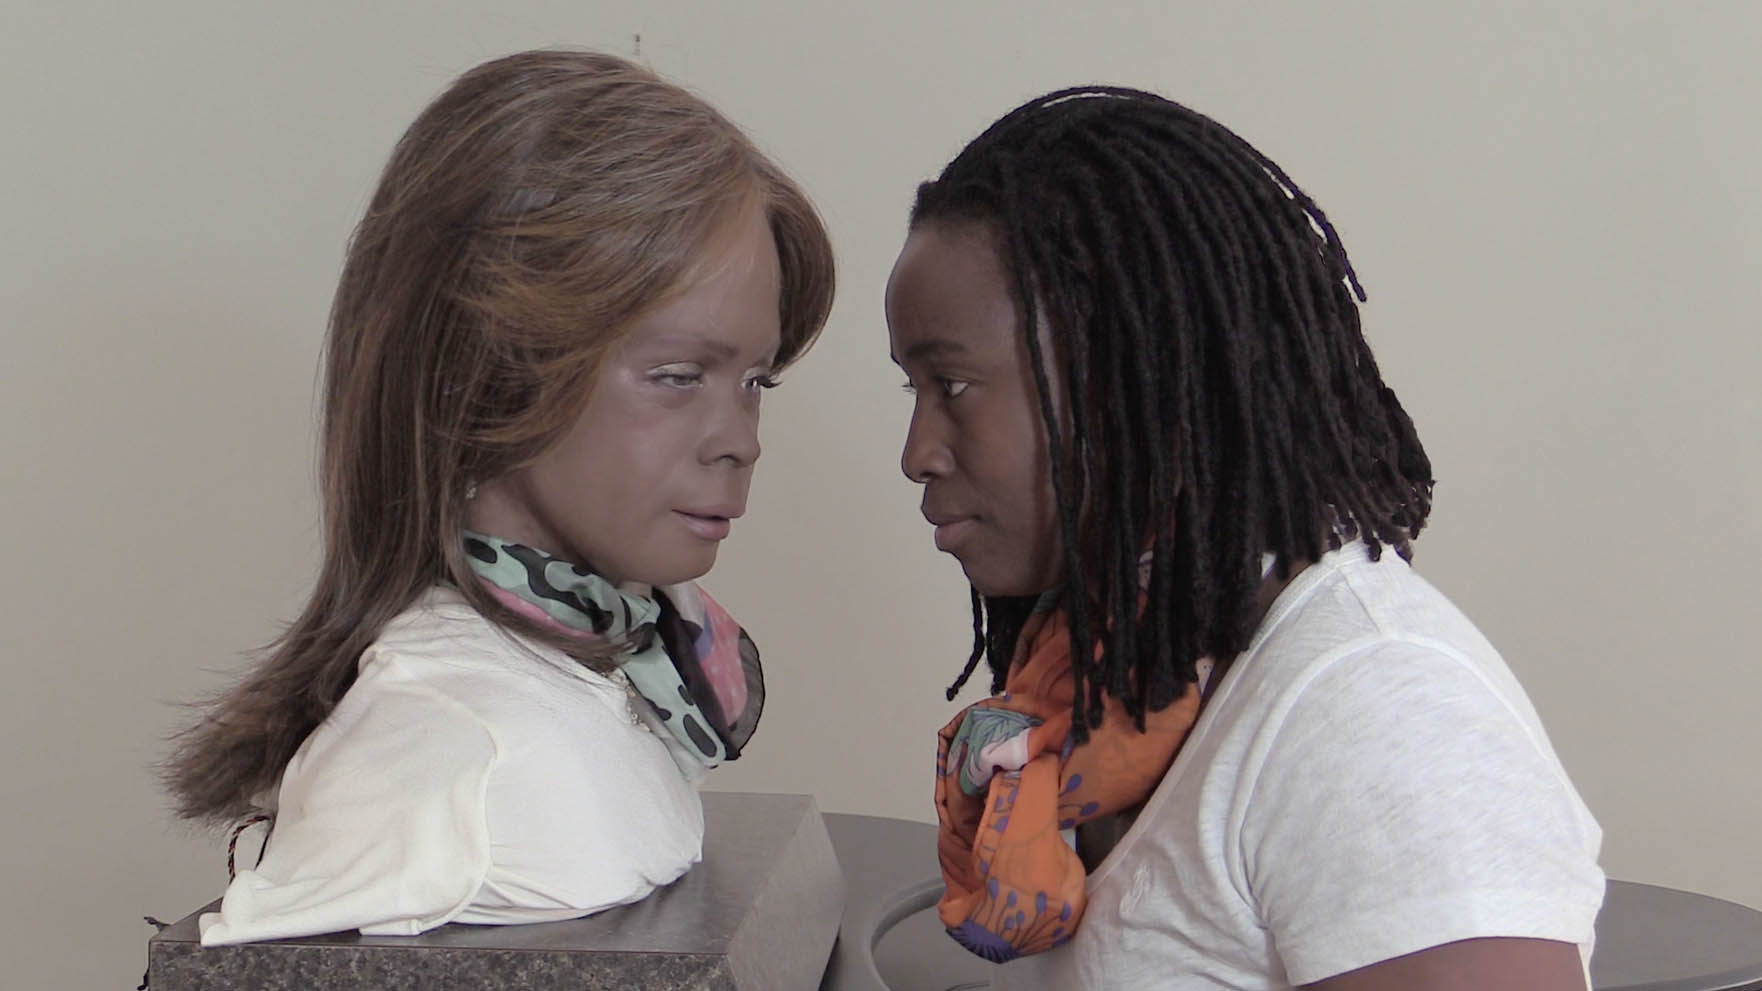 ROBOT LOVE. Stephanie Dinkins. Conversations with Bina48